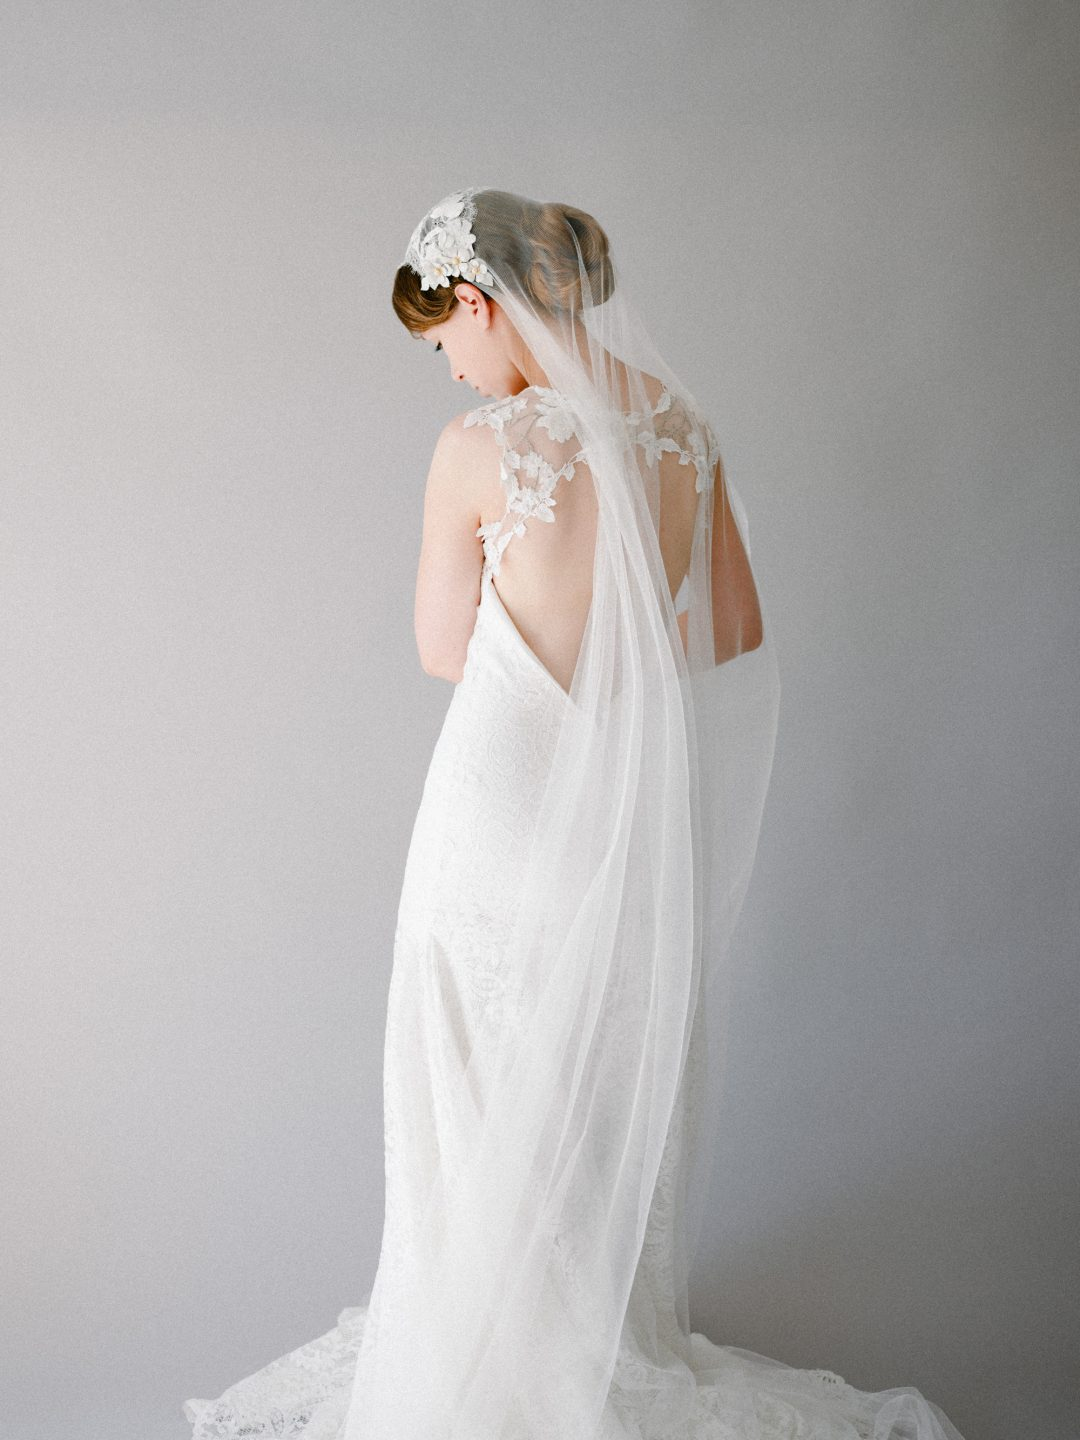 Style 907 - Chantilly Lace Juliet Cap Veil - by SIBO Designs Couture www.sibodesigns.com